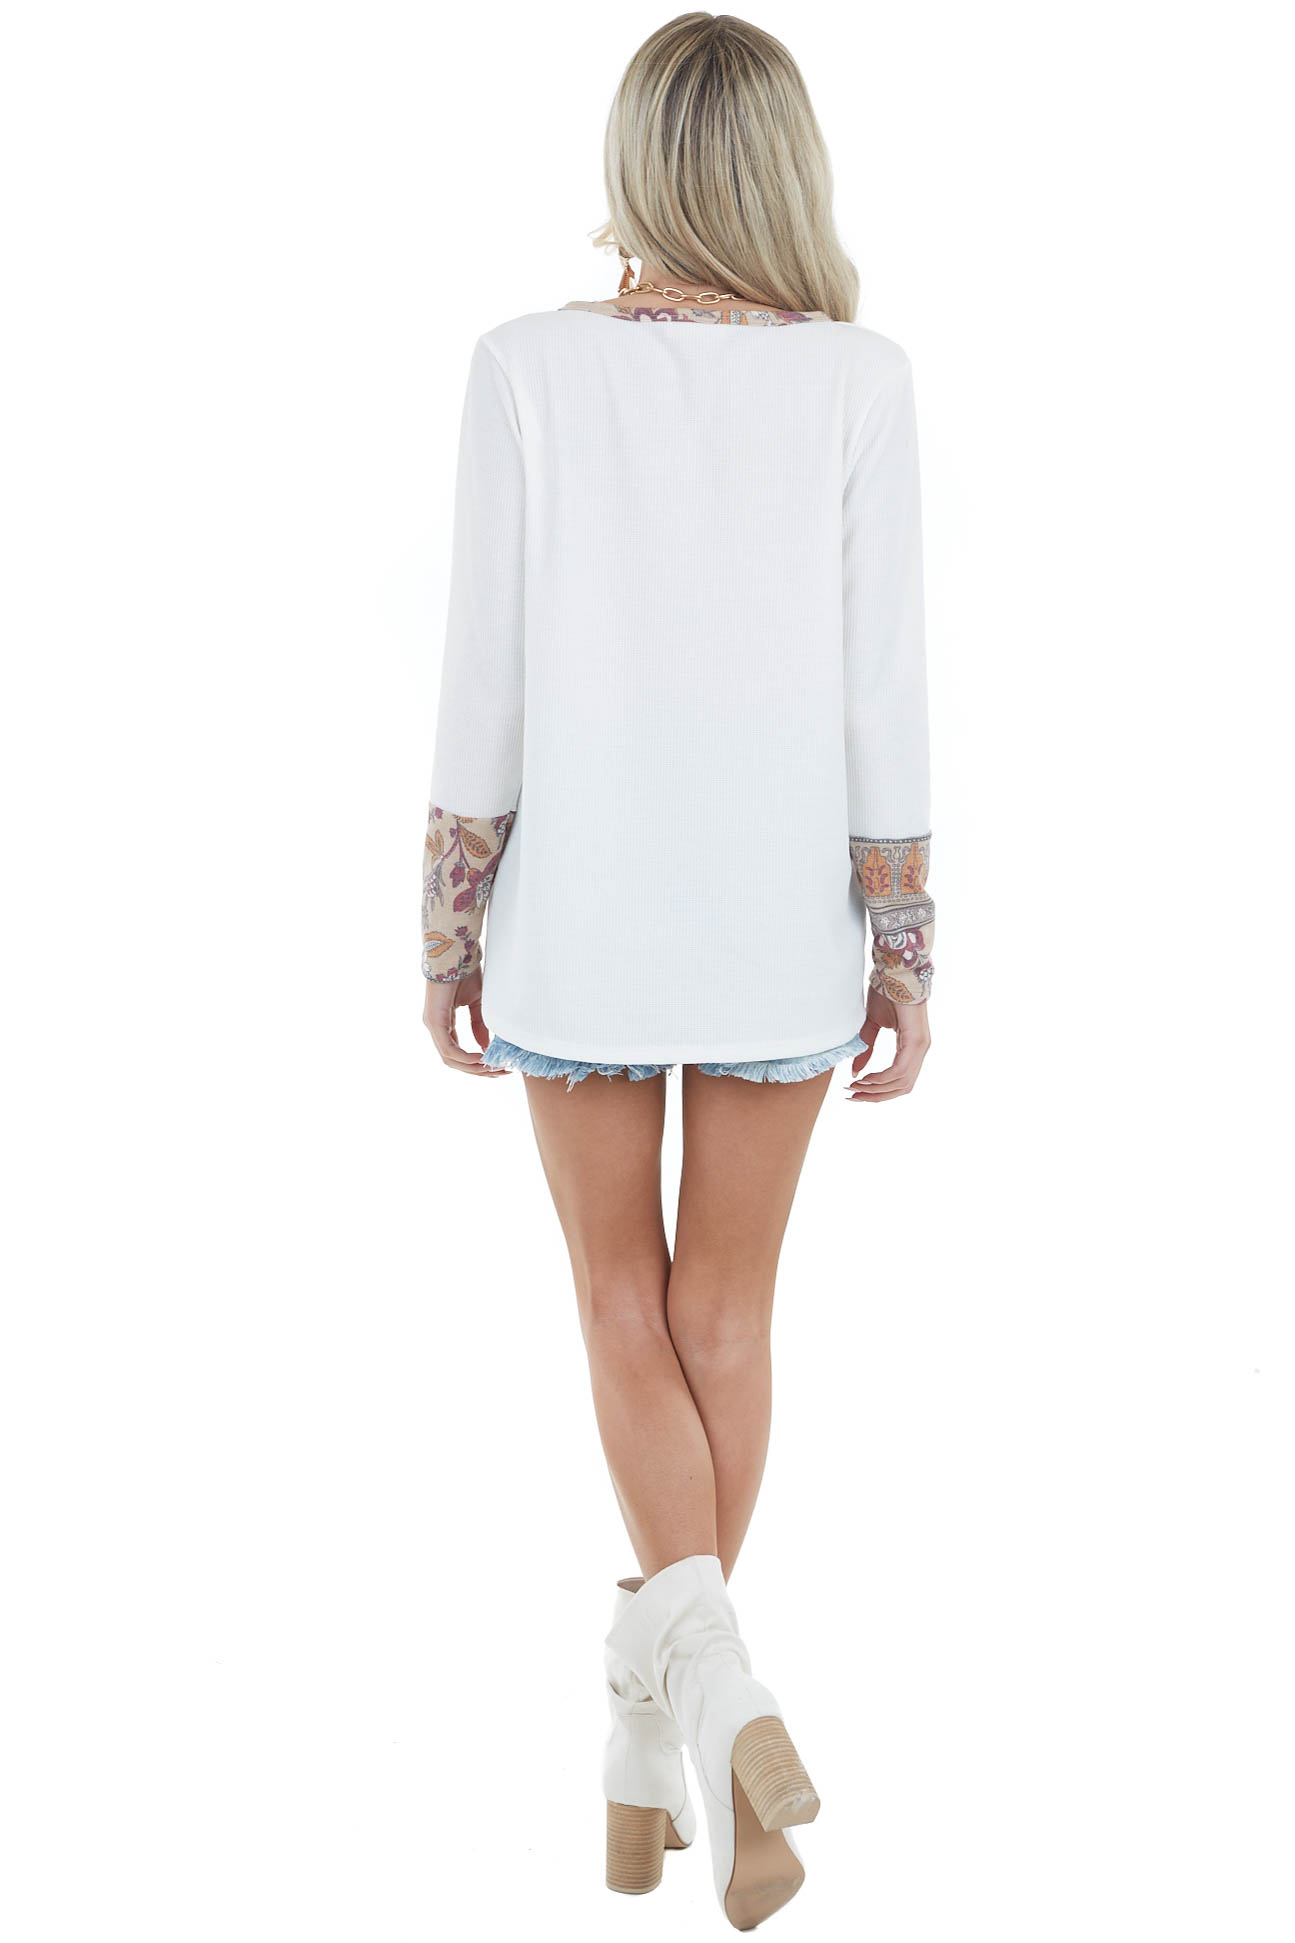 Off White Long Sleeve Top with Floral Print Contrast